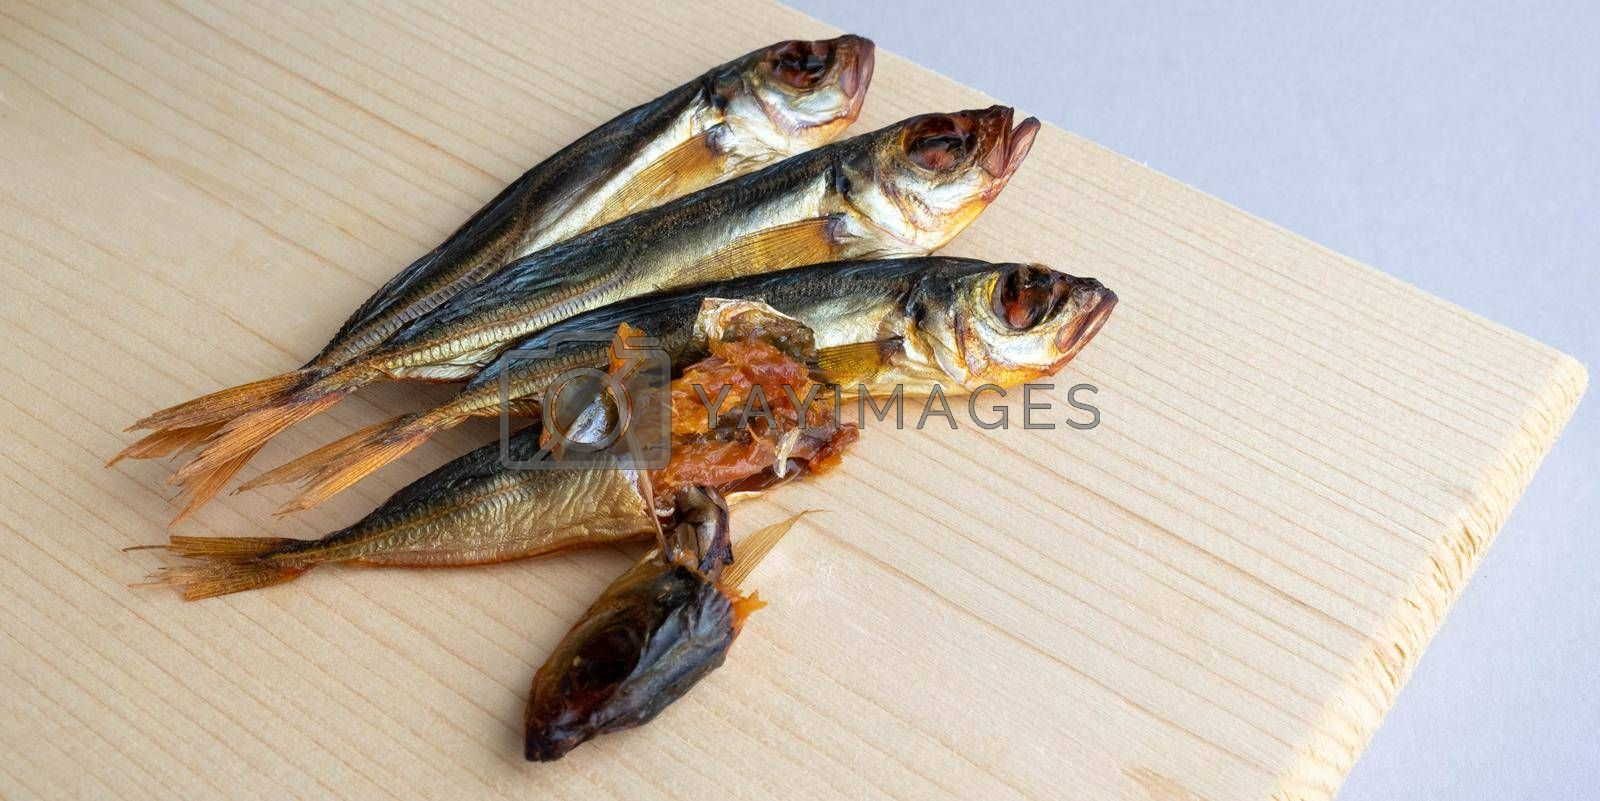 Royalty free image of Horse mackerel fish, cold smoked. Smoked fish close-up on a wooden background .Food industry by lapushka62